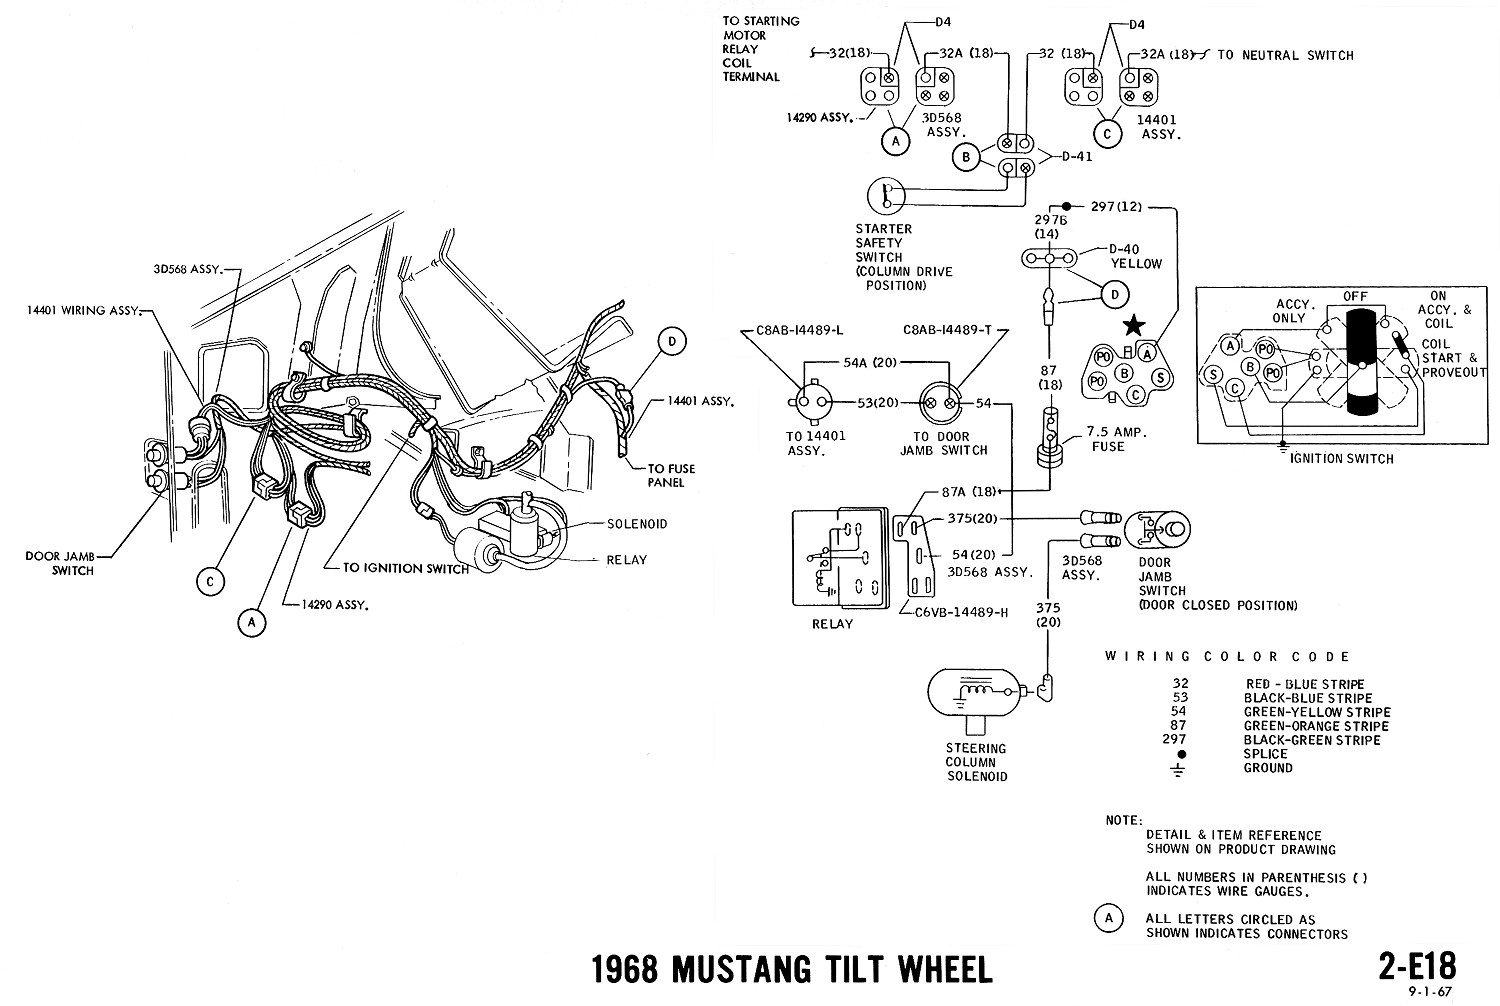 1968 Mustang Wiring Diagrams Evolving Software Power Wheels Harness Tilt Wheel